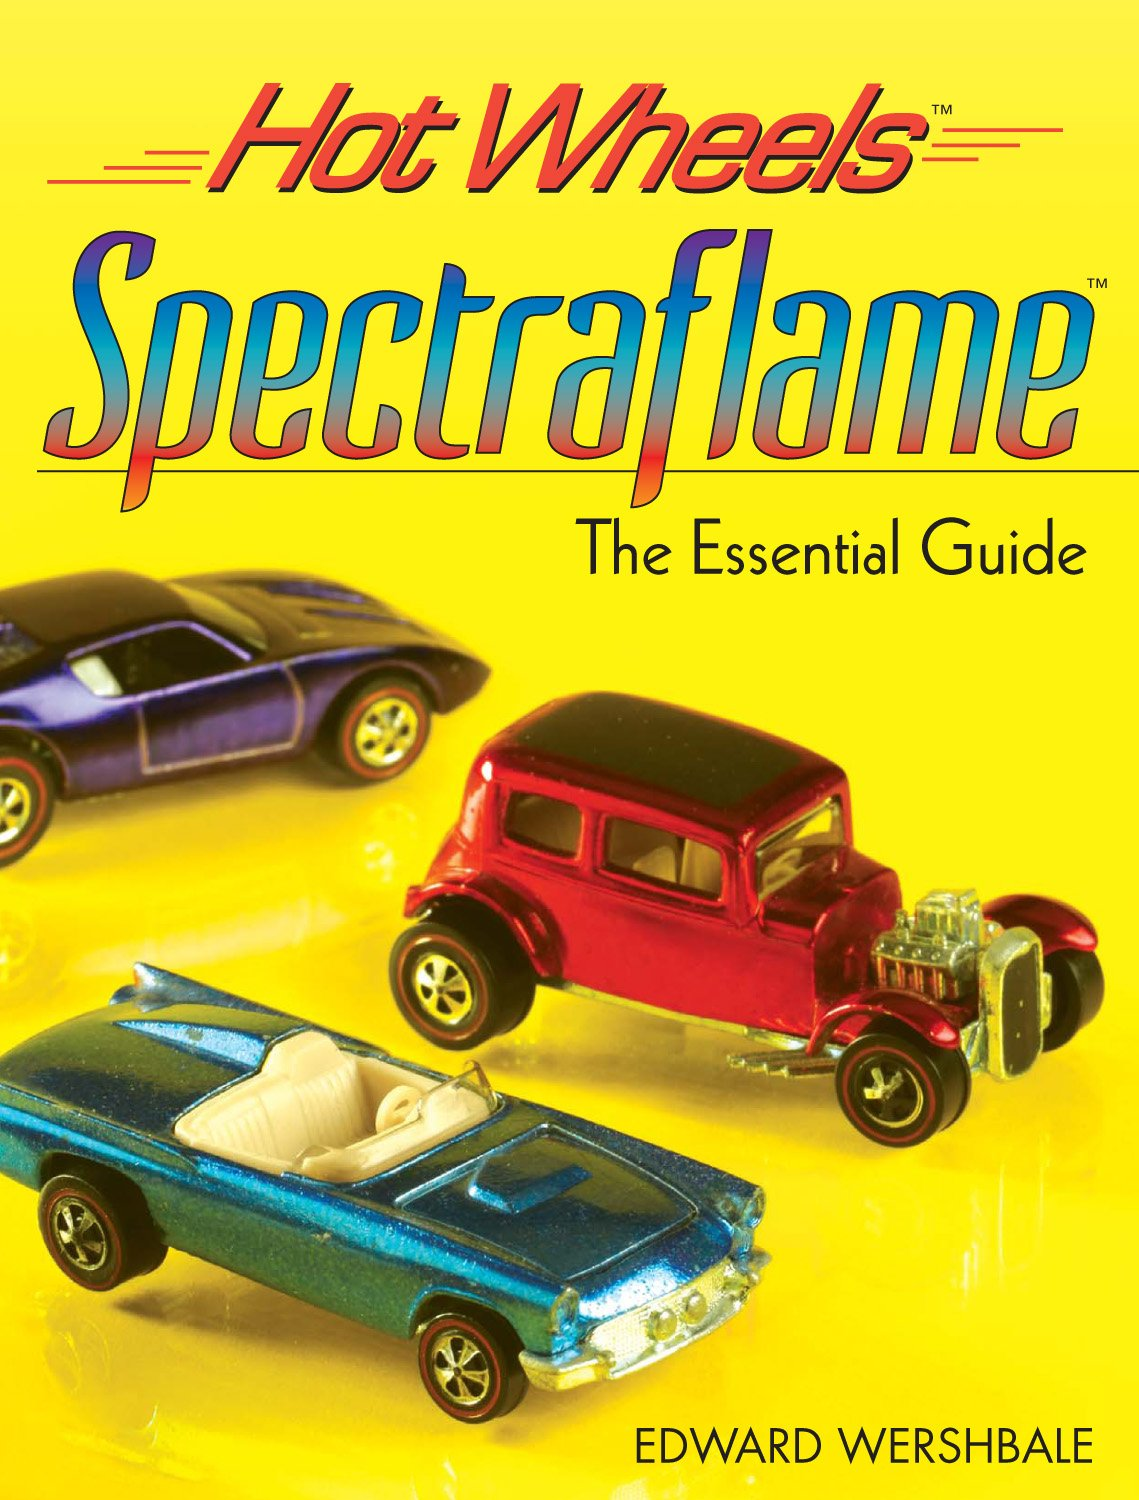 Hot Wheels Spectraflame: The Essential Guide (Hot Wheels (Krause  Publications)): Edward Wershbale: 9780896896659: Amazon.com: Books